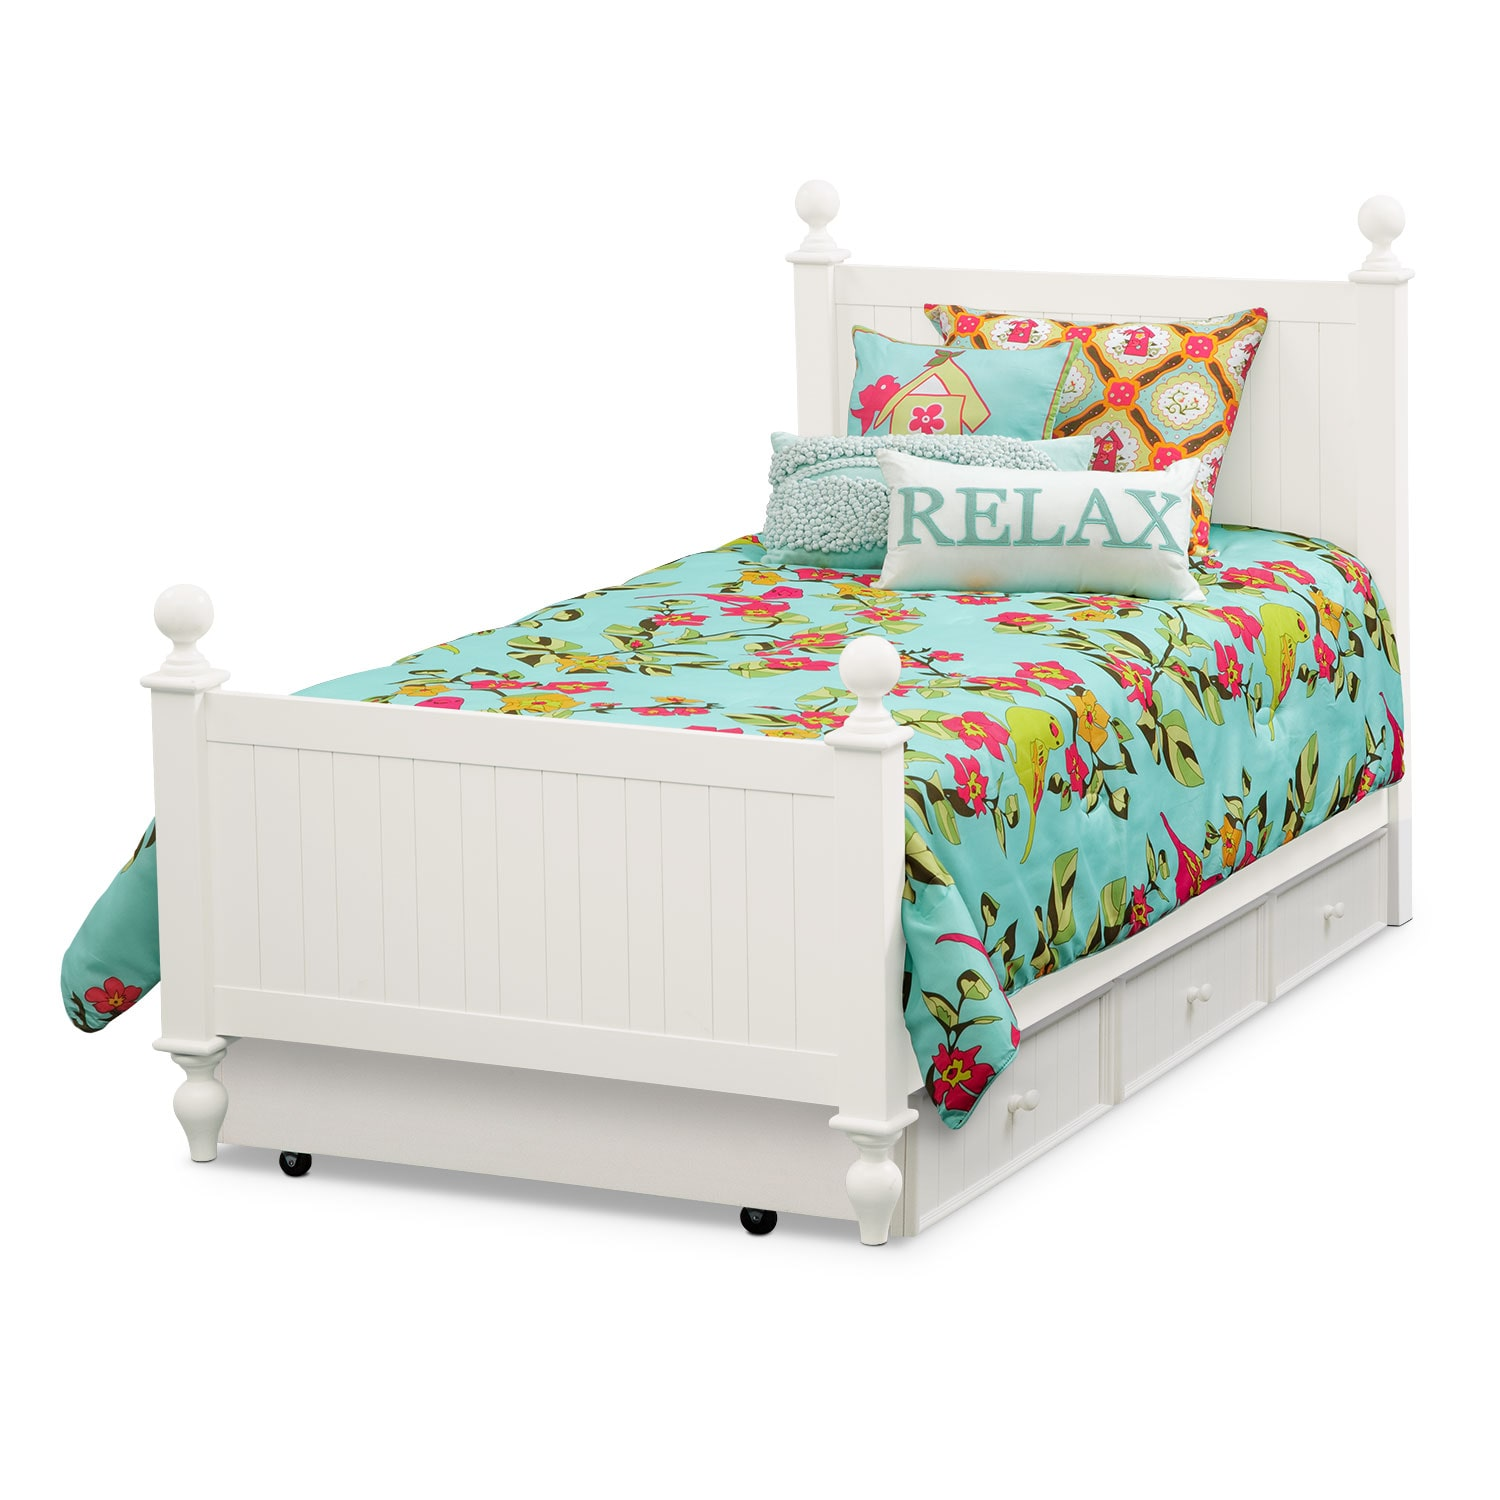 Colorworks Full Bed w/ Trundle - White